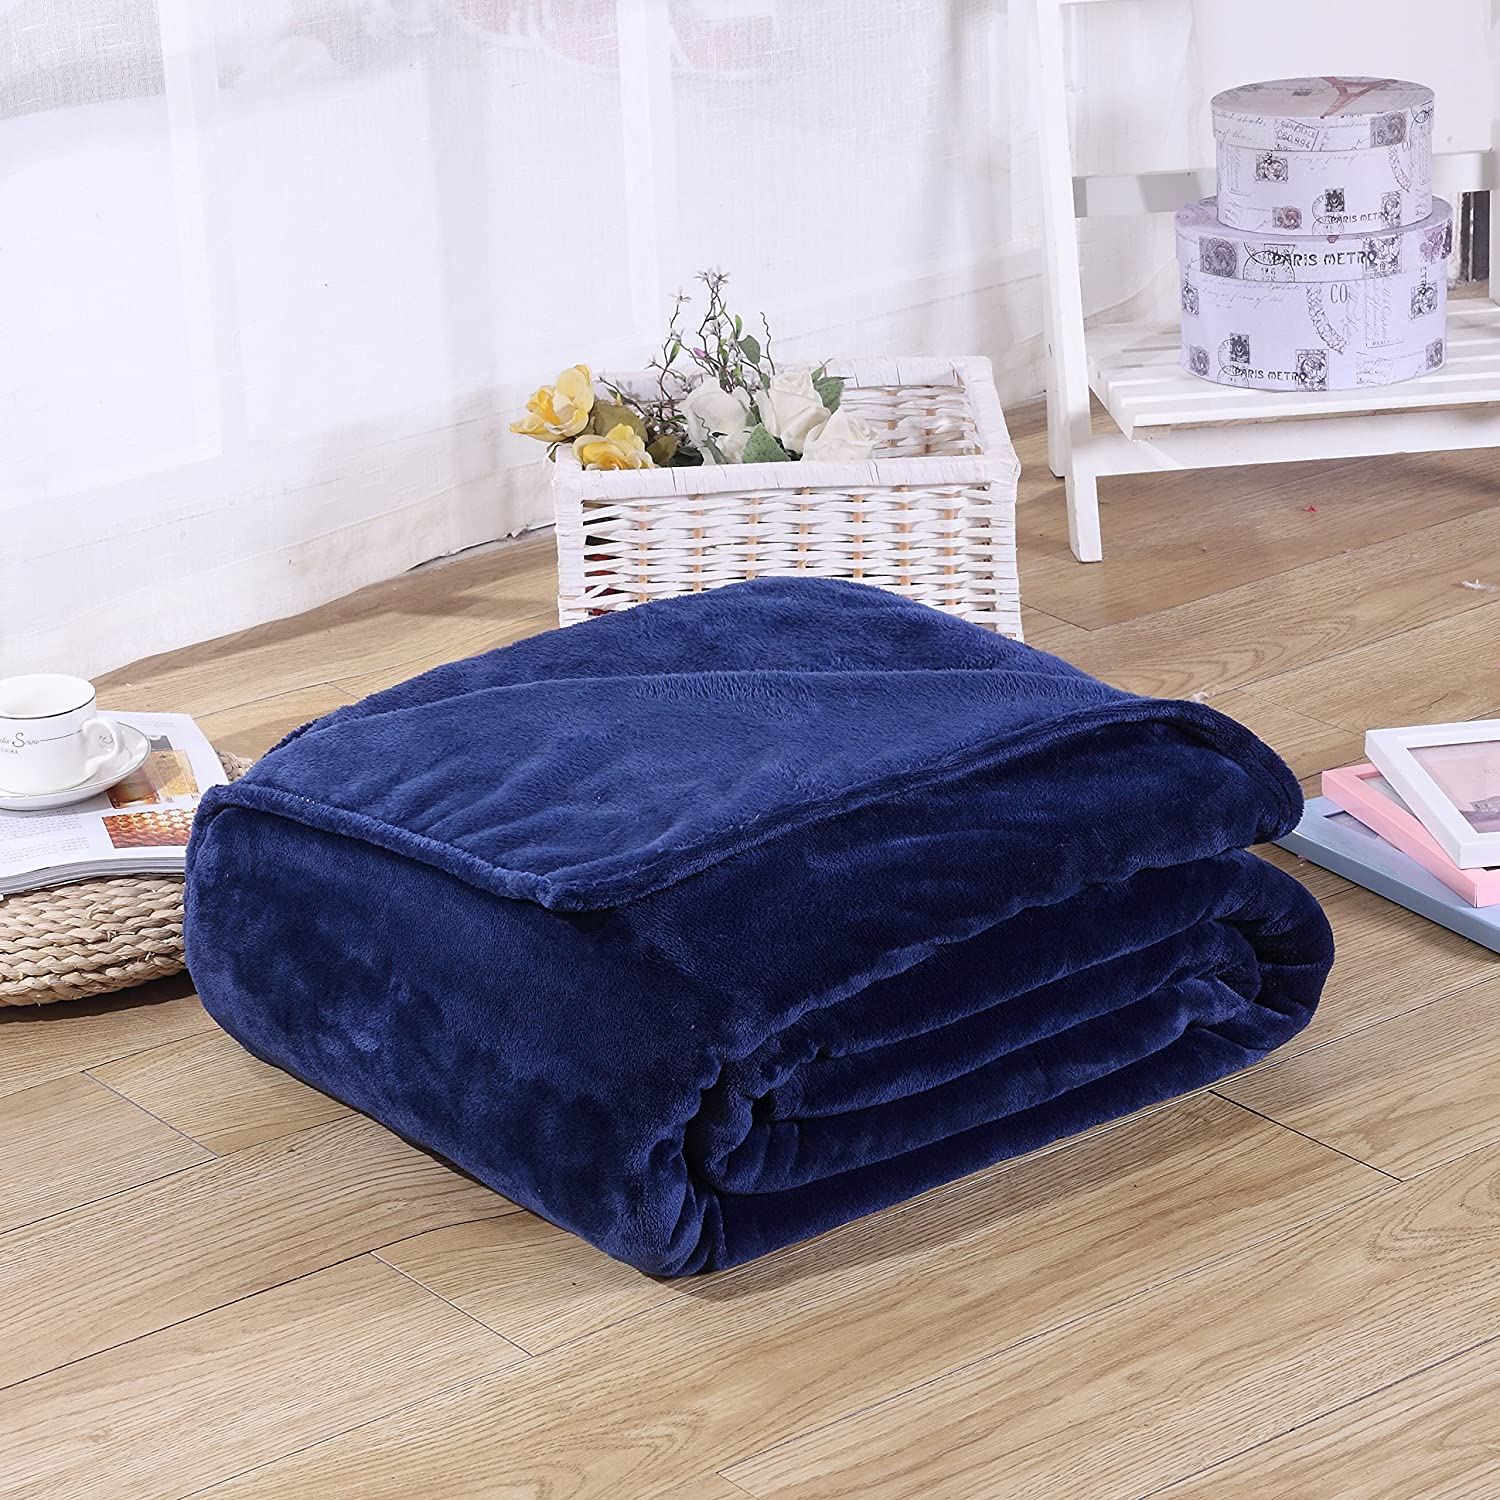 Super Soft Velvet Plush Throw, Fleece Flannel Home Couch Baby Warm Blanket, Popular Neutral colors, 27  X 39  (Navy bluee)